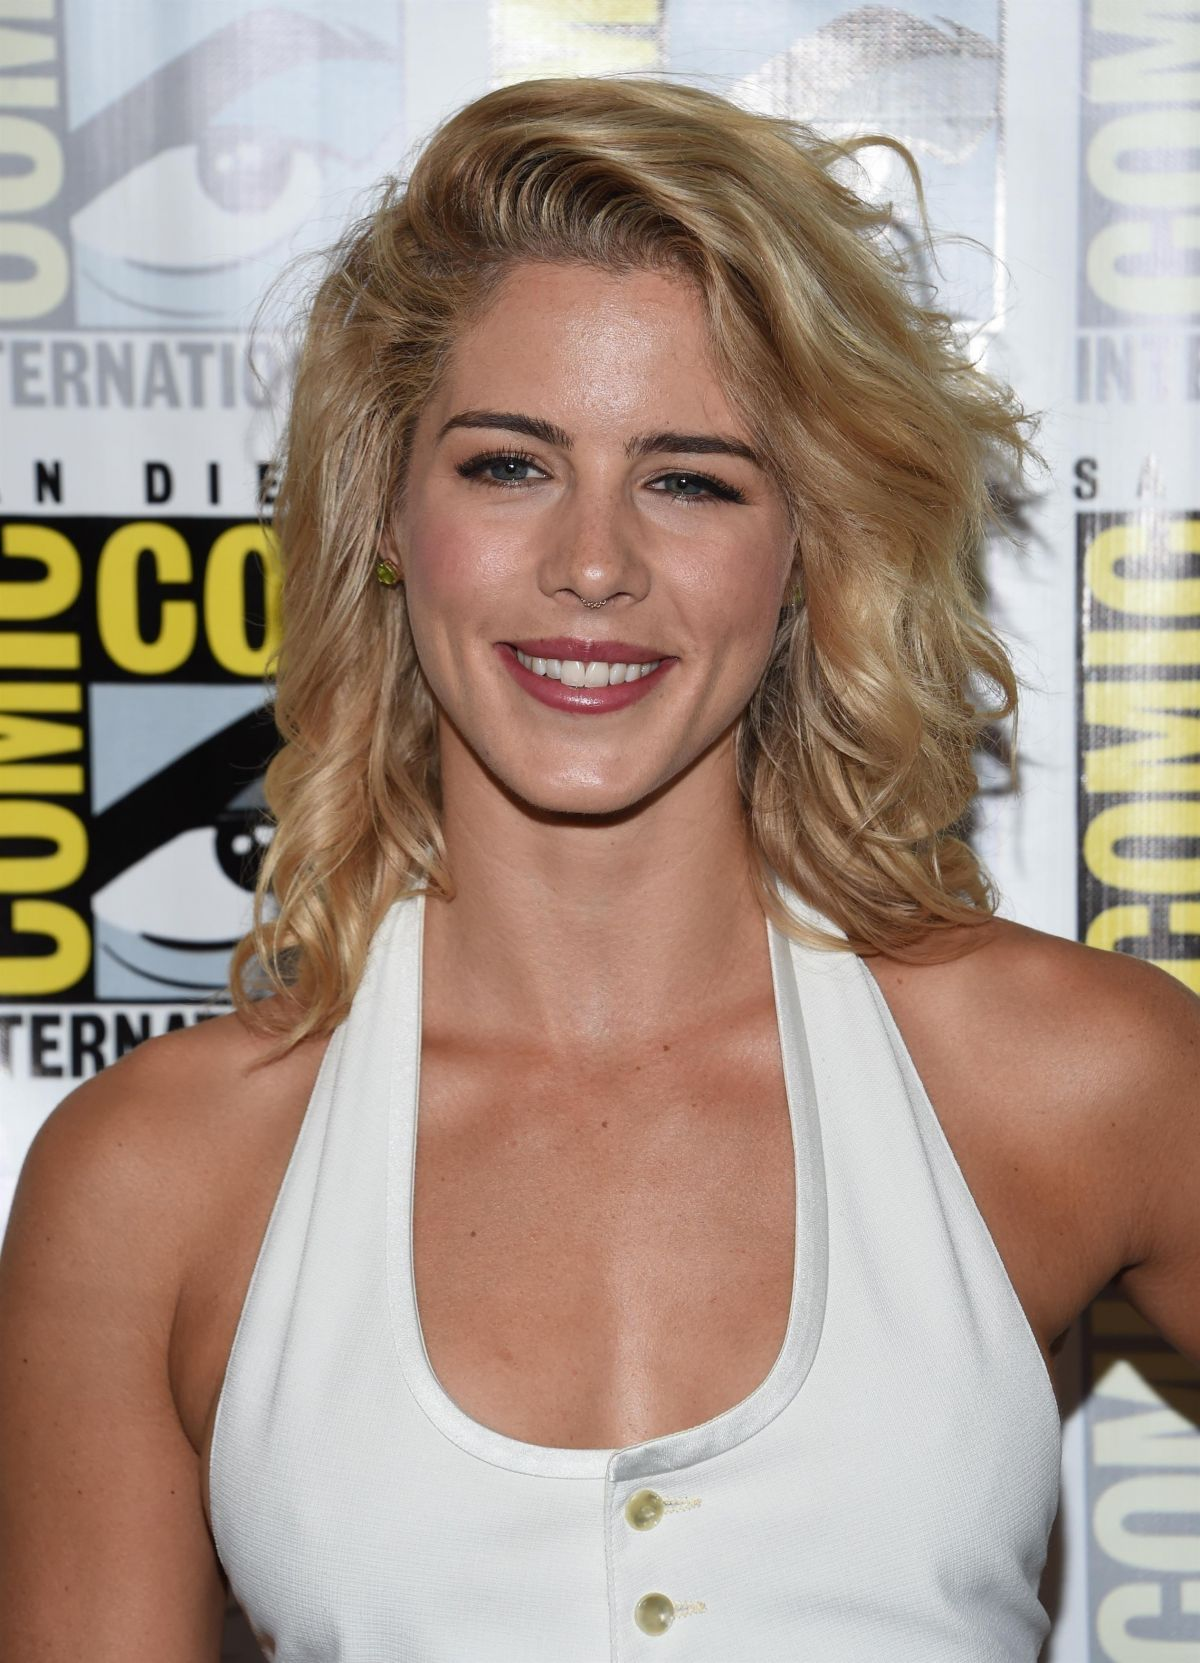 Bett Comic Emily Bett Rickards At Arrow Press Line At Comic Con In San Diego